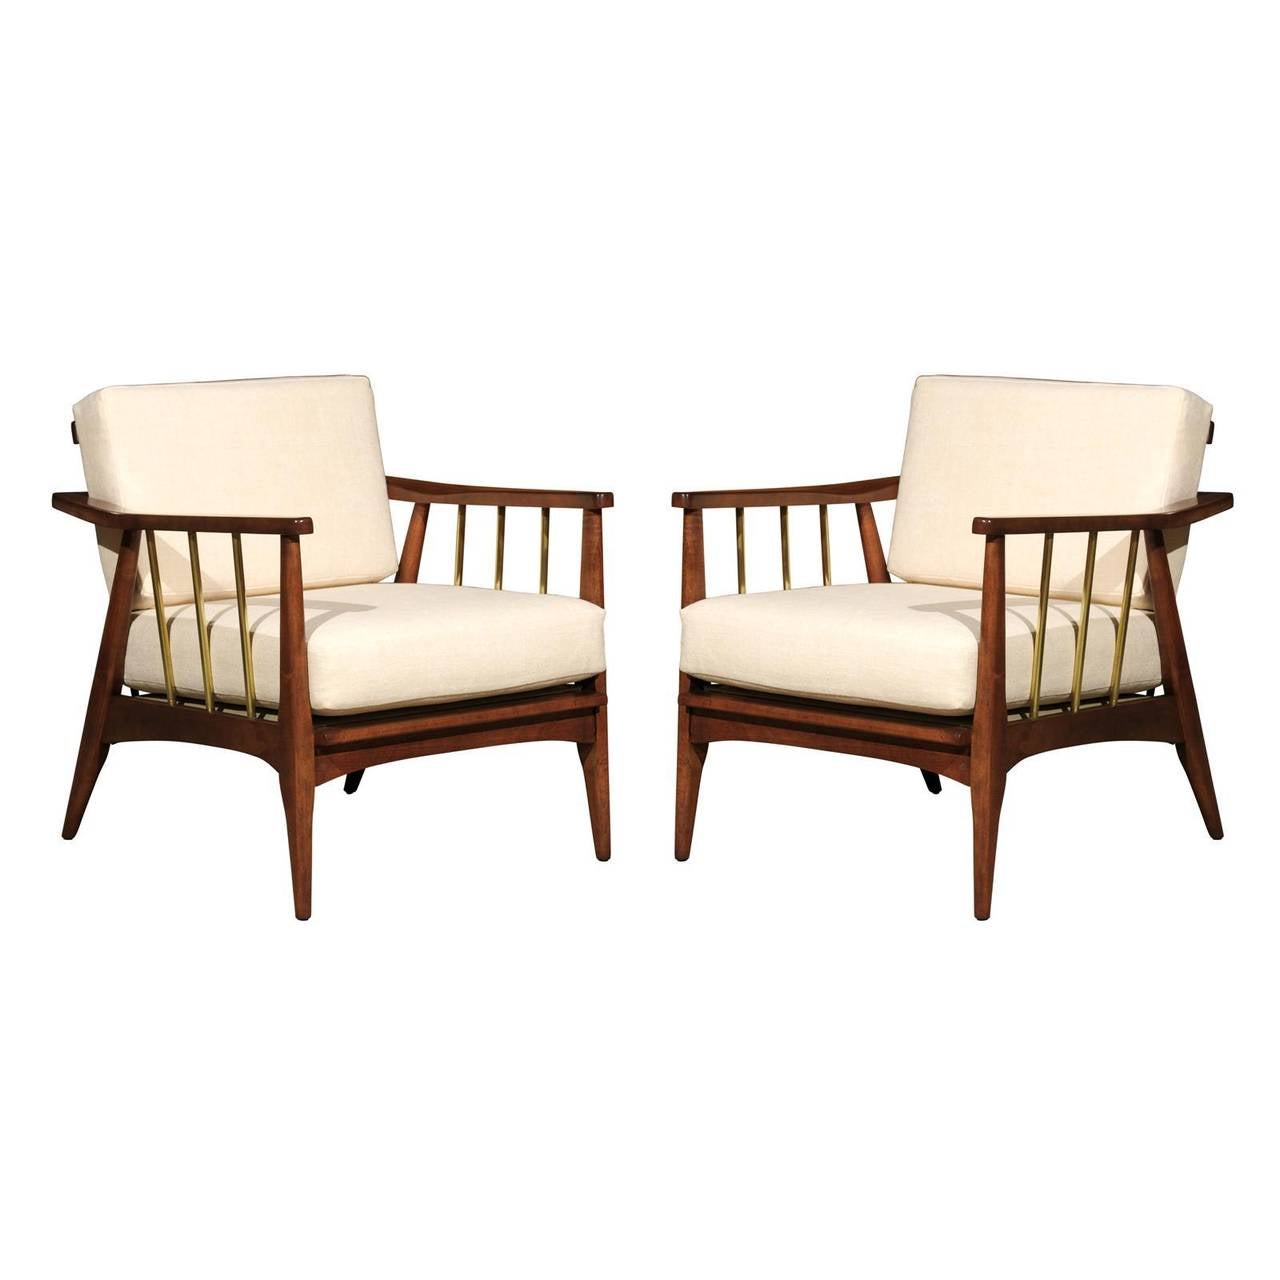 Rare Pair of Lounge Chairs Attributed to Edmond Spence